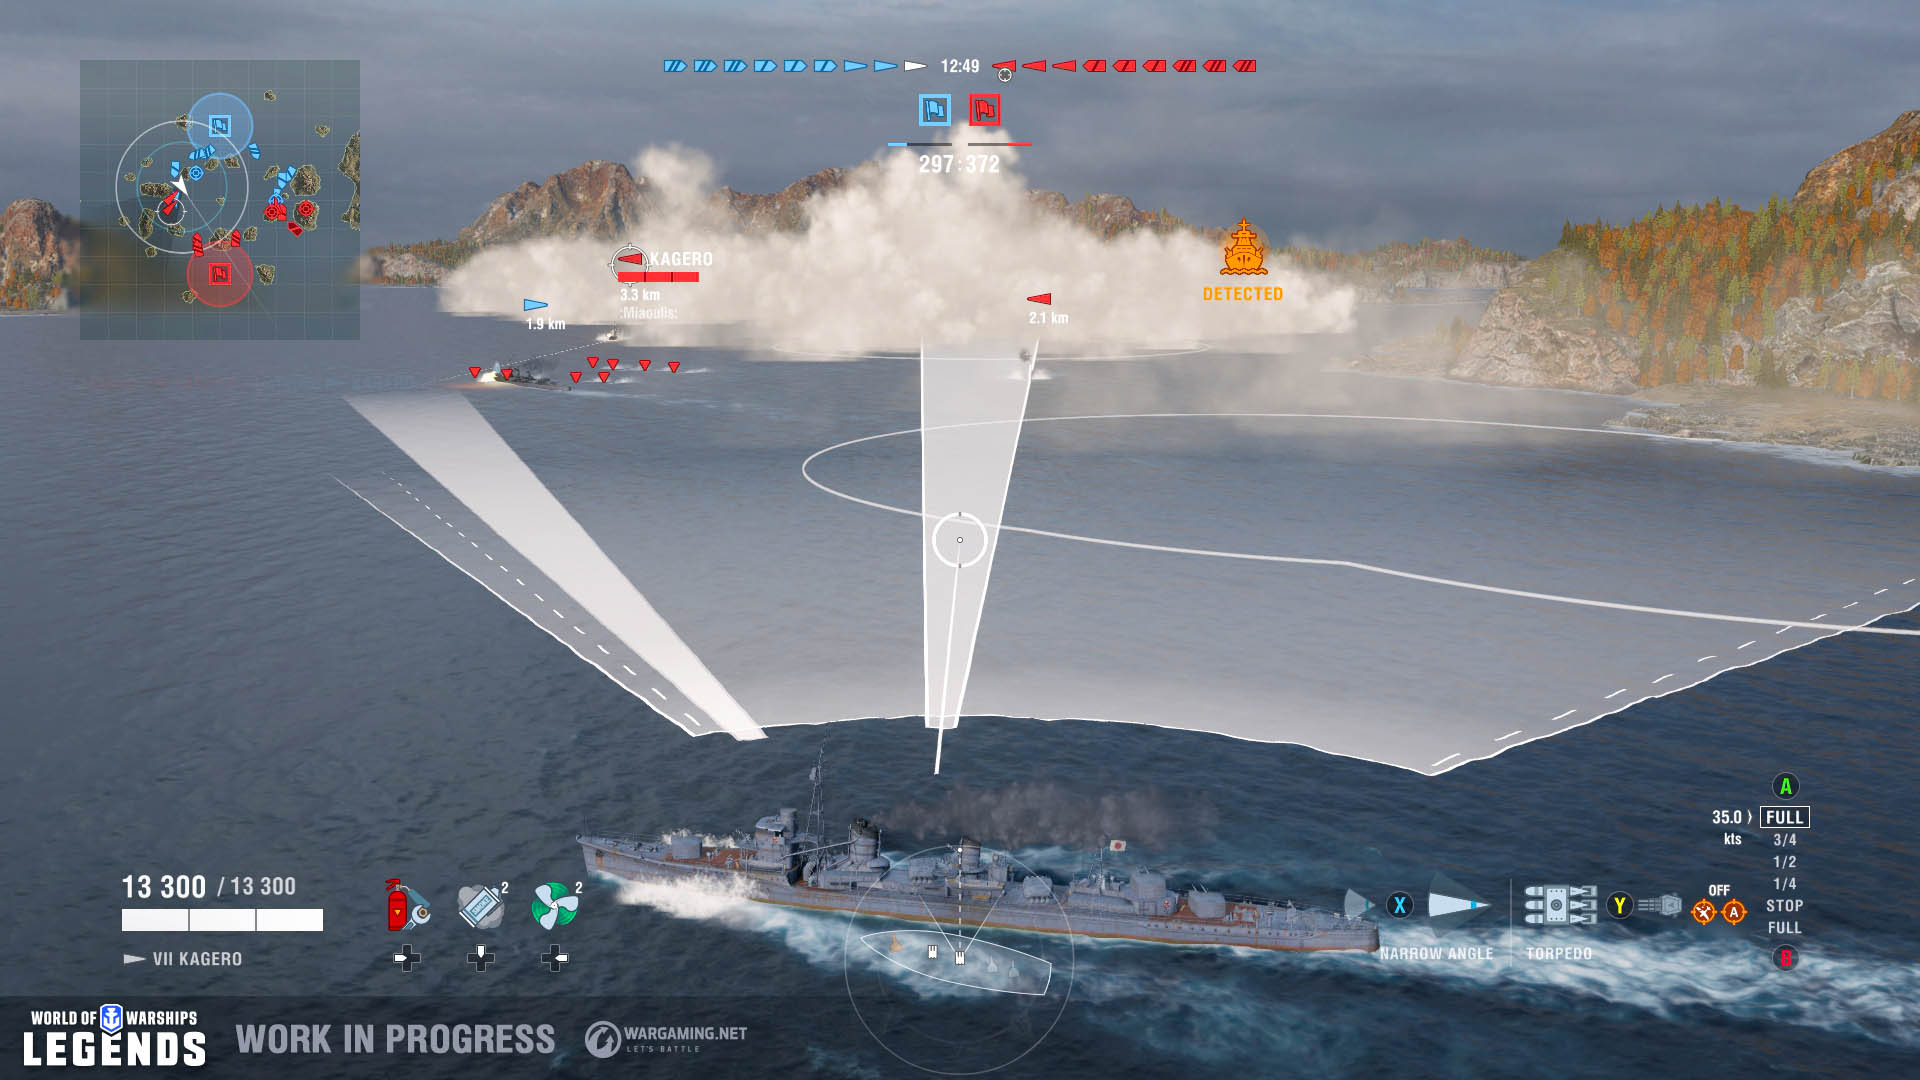 World of Warships: Legends - Aiming